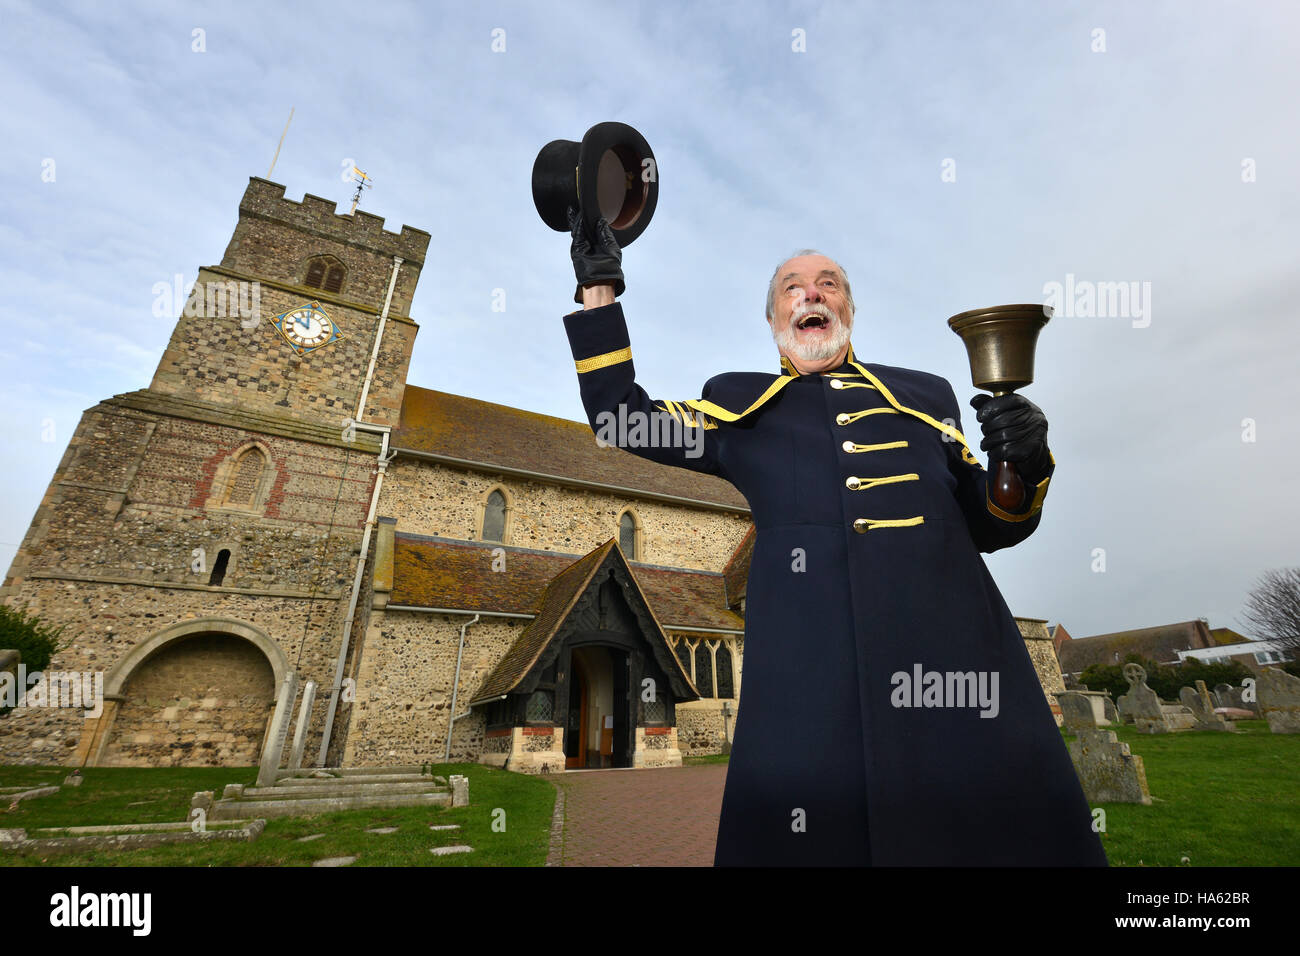 Town crier at work - Peter White from Seaford, been a crier for 40 years - Stock Image